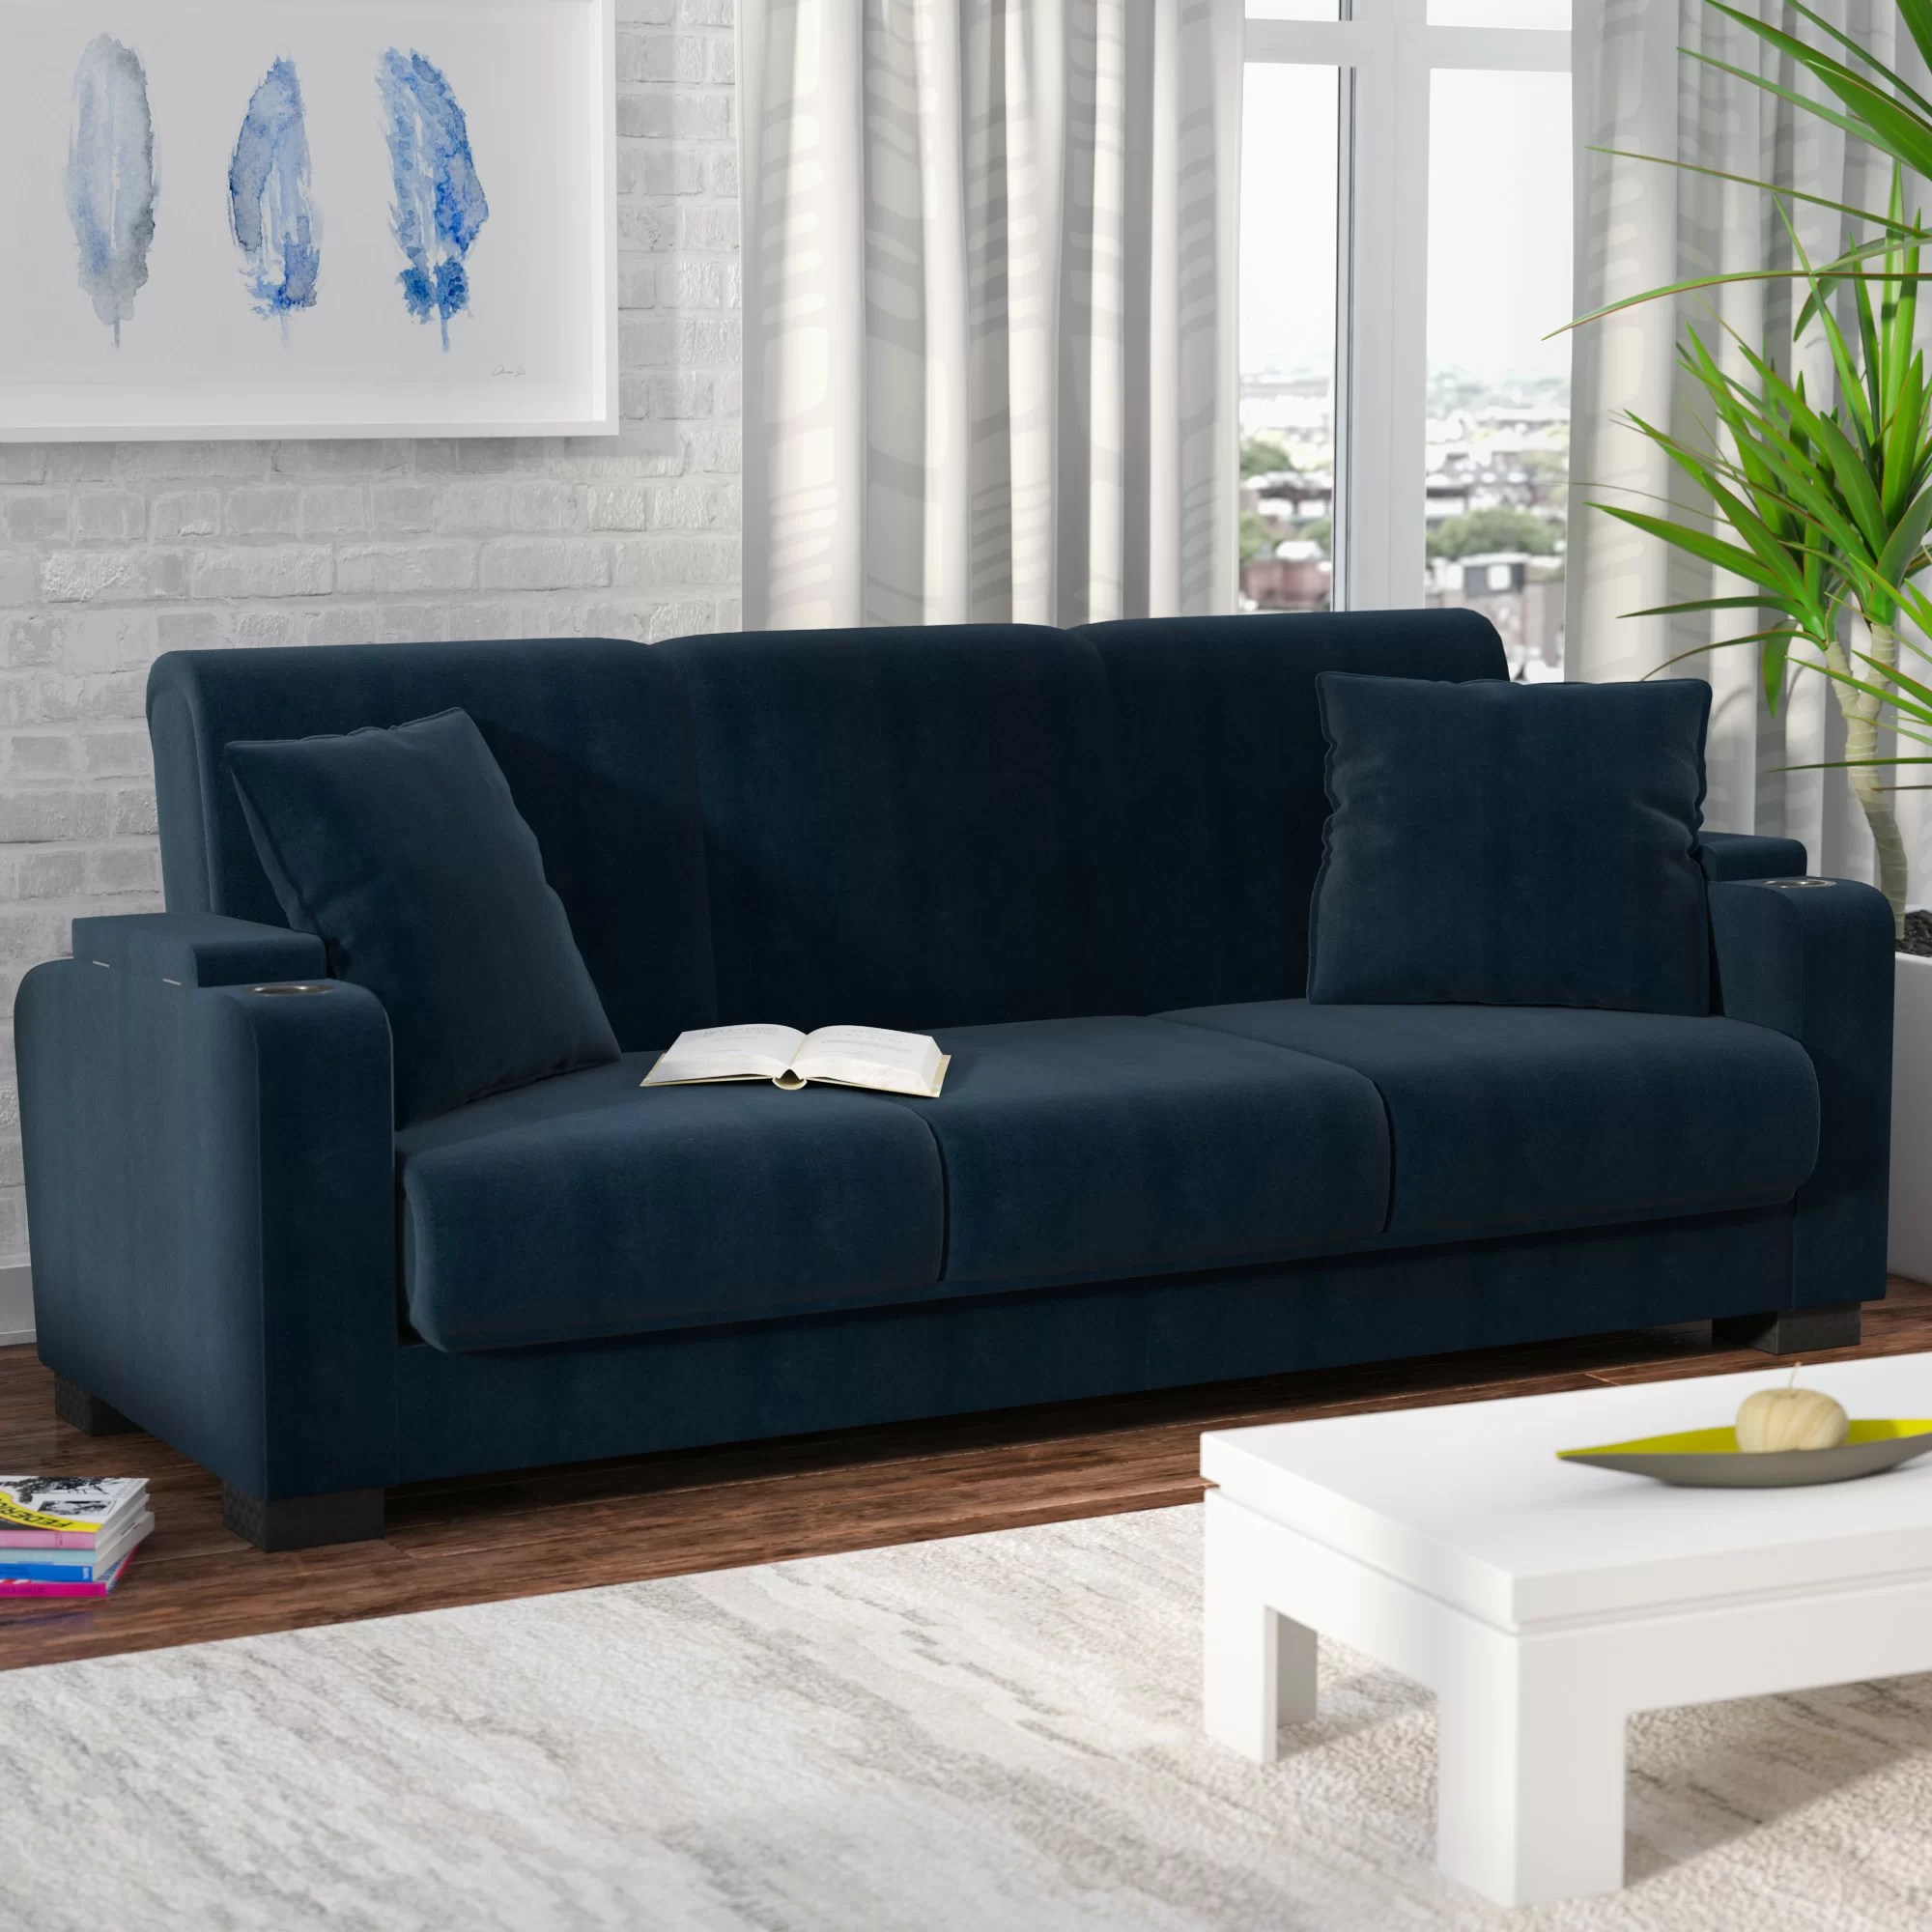 Couches Sleeper Ciera Convertible Sleeper Sofa